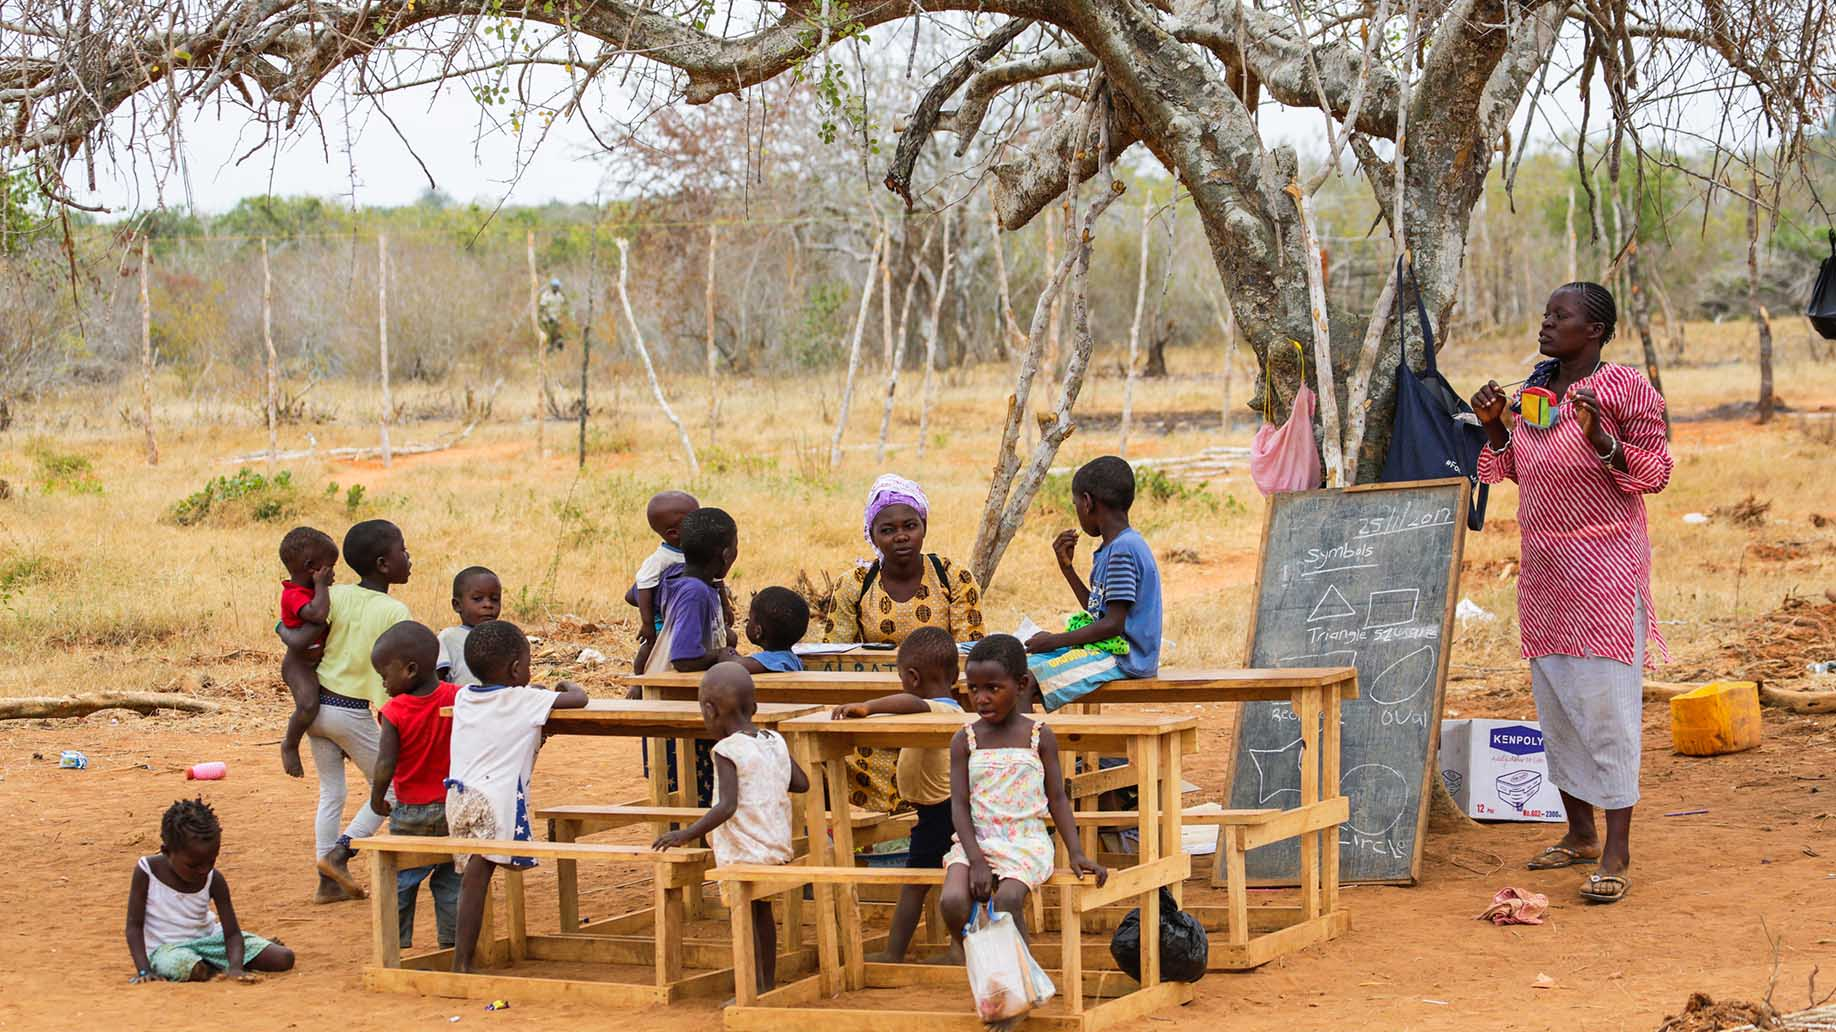 children from small local village attending open air primary school